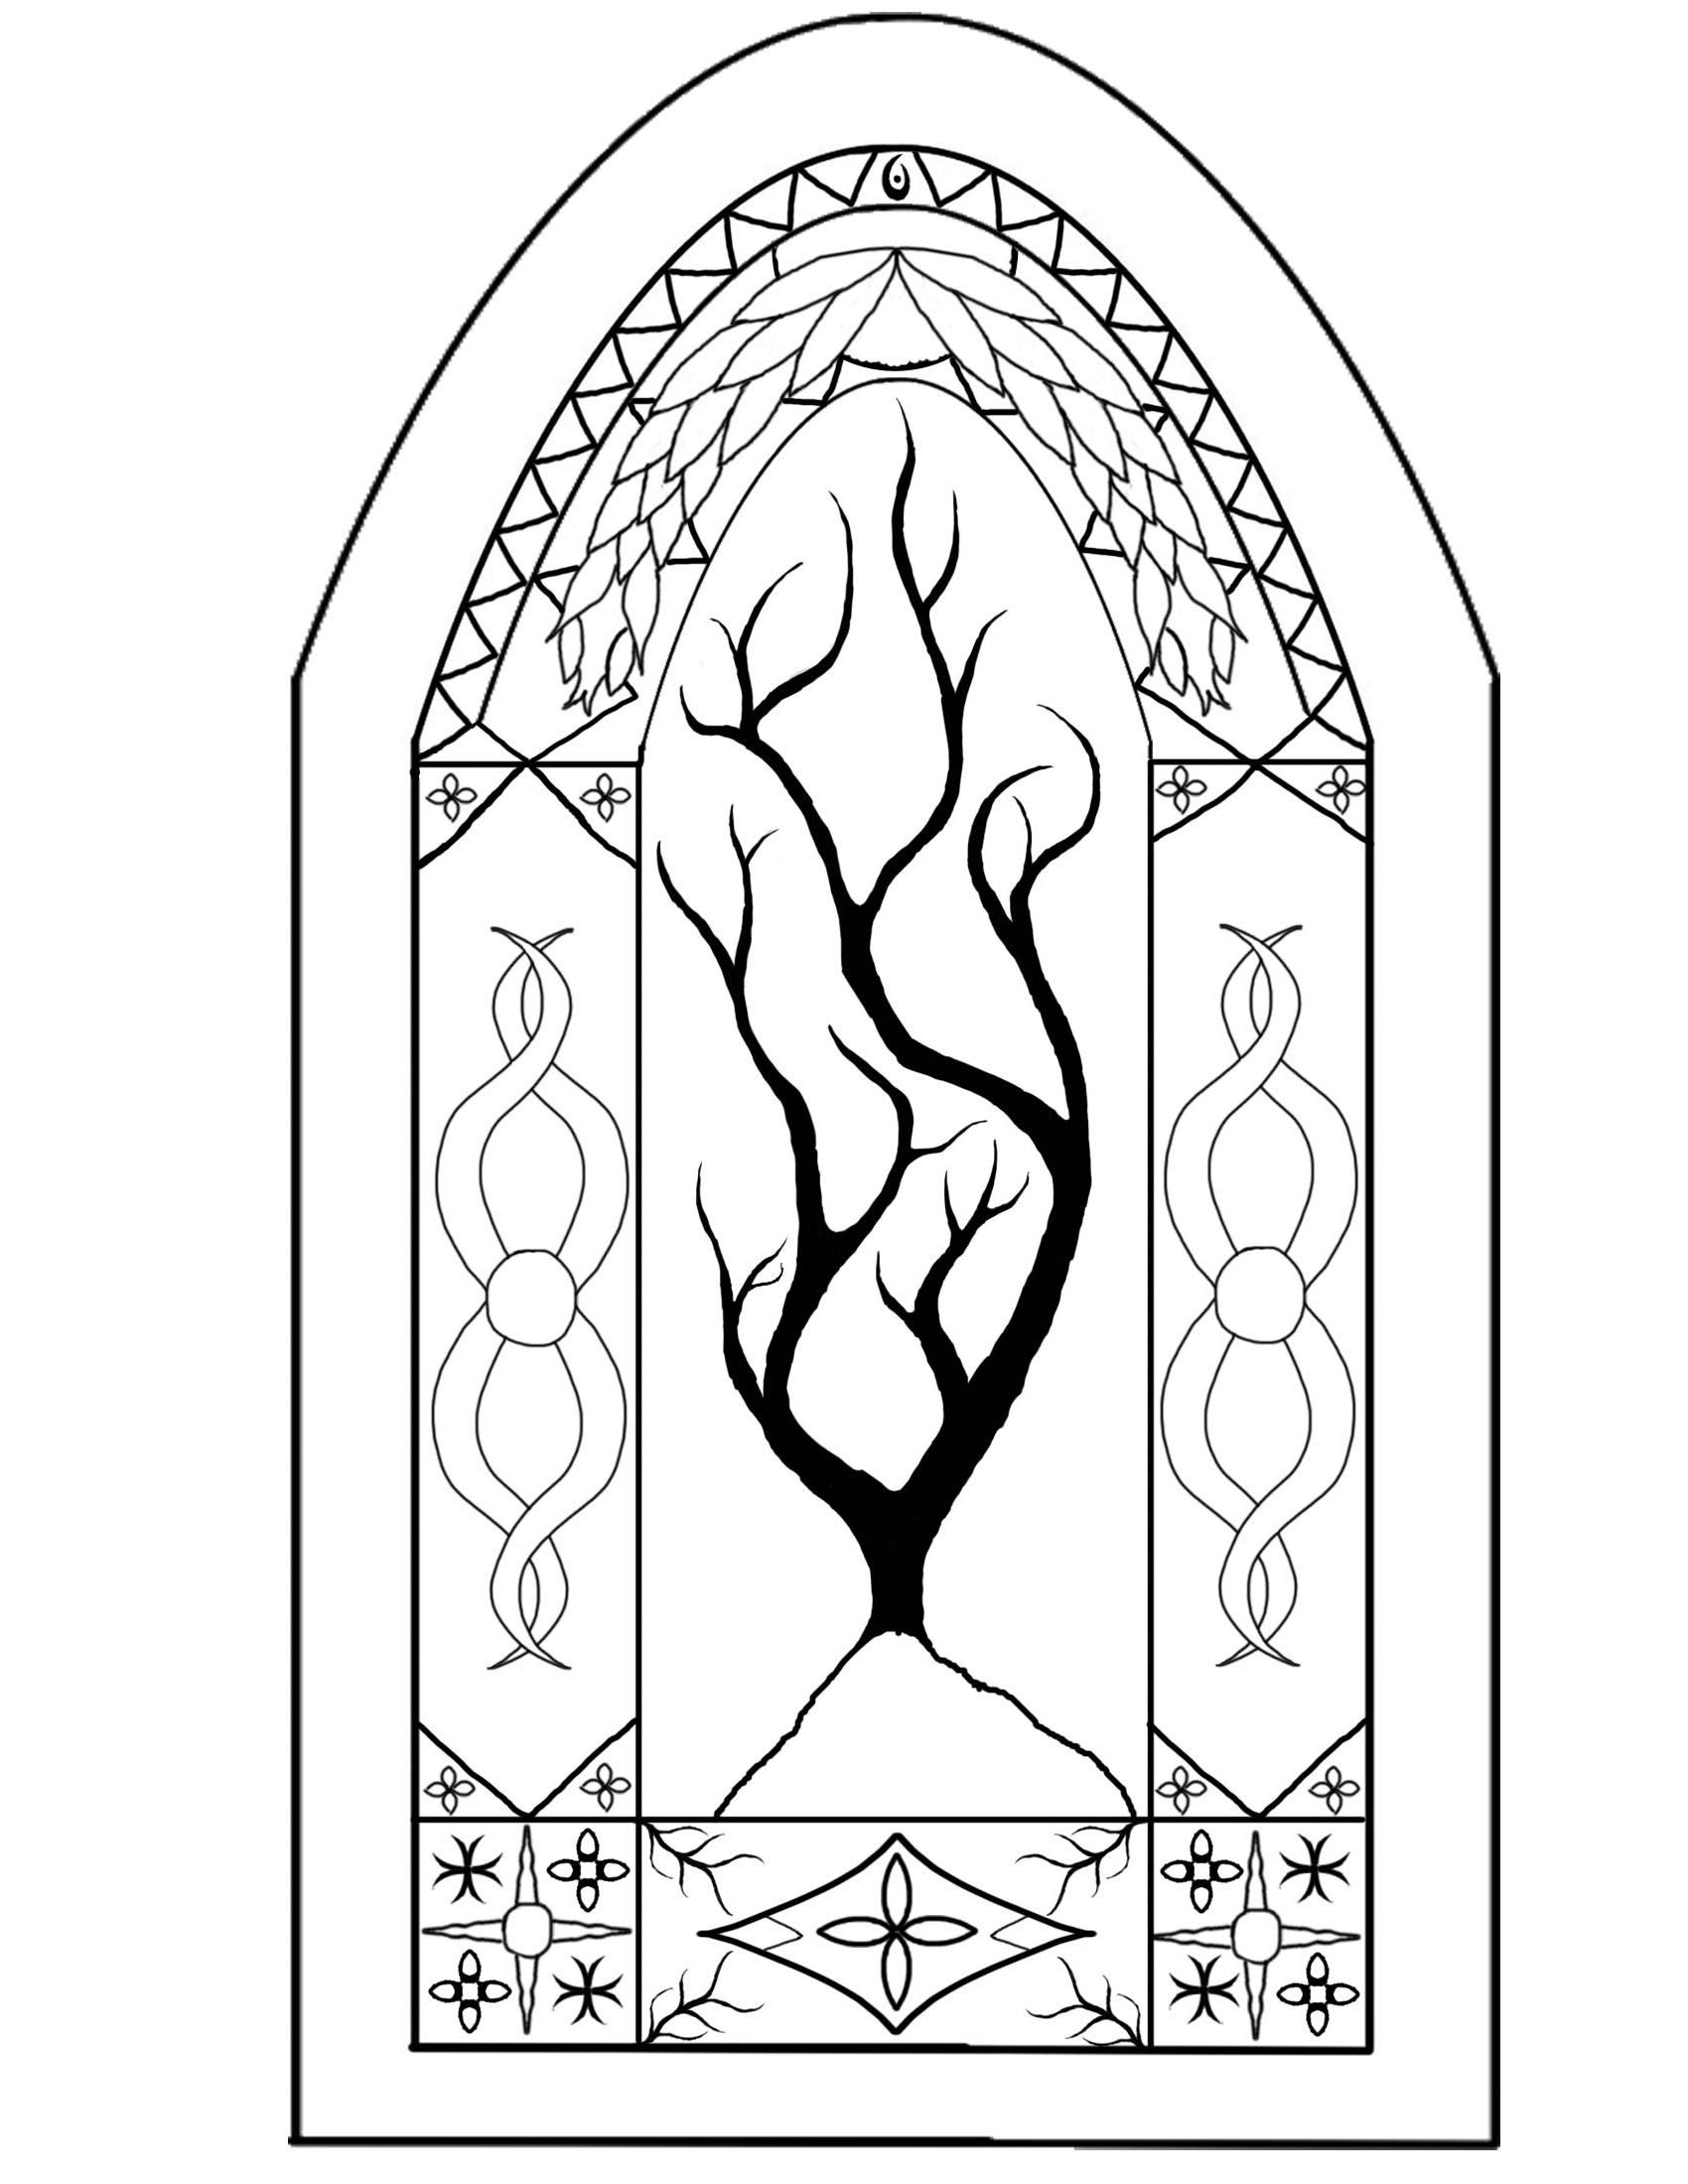 Adult Beauty Stained Glass Window Coloring Page Images top printable stained glass window coloring page az pages pictures to color for kids images